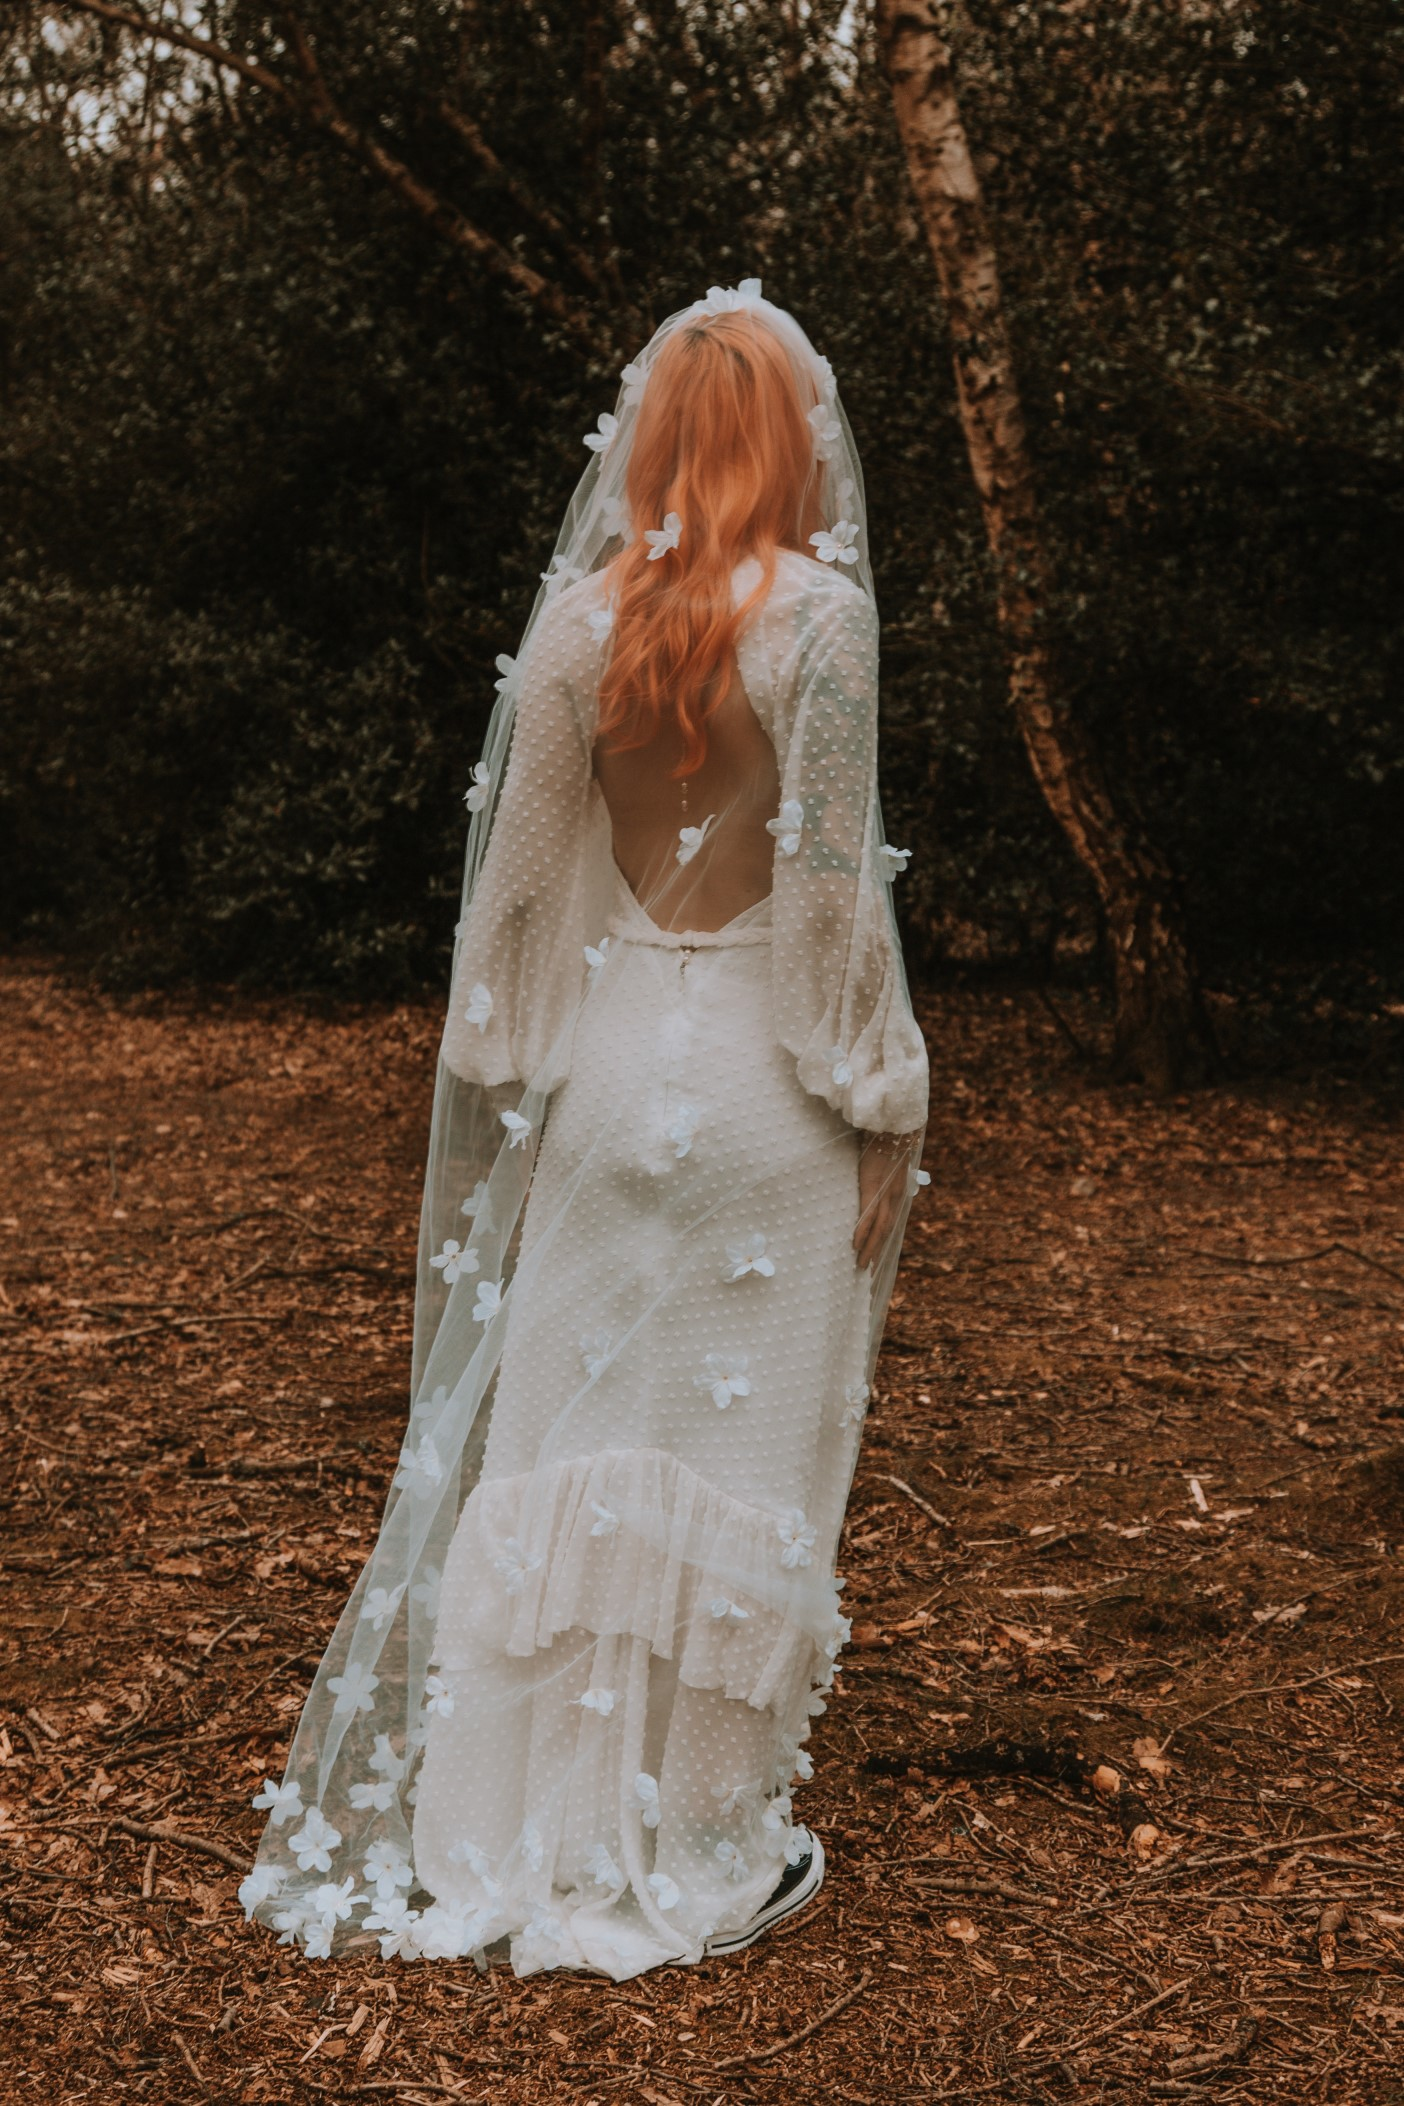 Alternative Forest Wedding - Sammy Leas Retro Emporium -Photography By Wills- alternative wedding - unconventional wedding- edgy woodland wedding- bohemian wedding dress